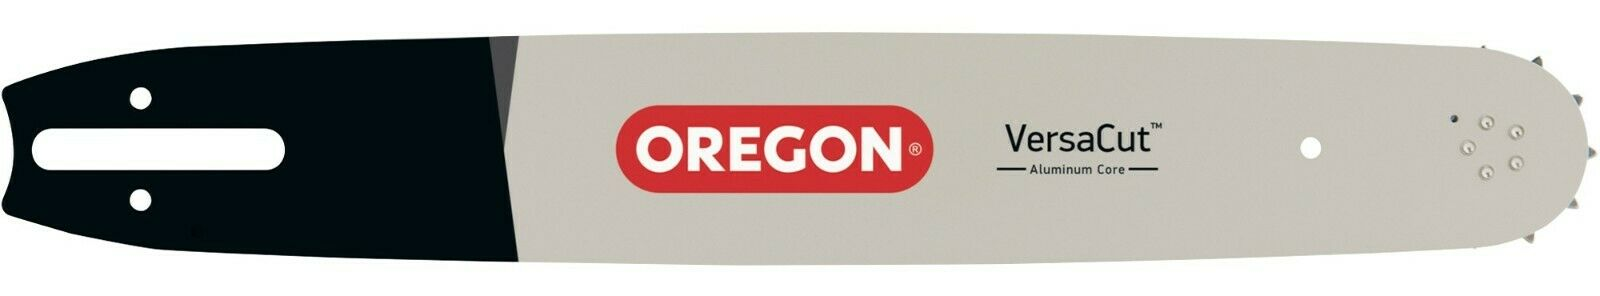 "20LPX072G 18/"" OREGON Bar /& Chain for Powerhorse 190502 190503       180SLGK095"